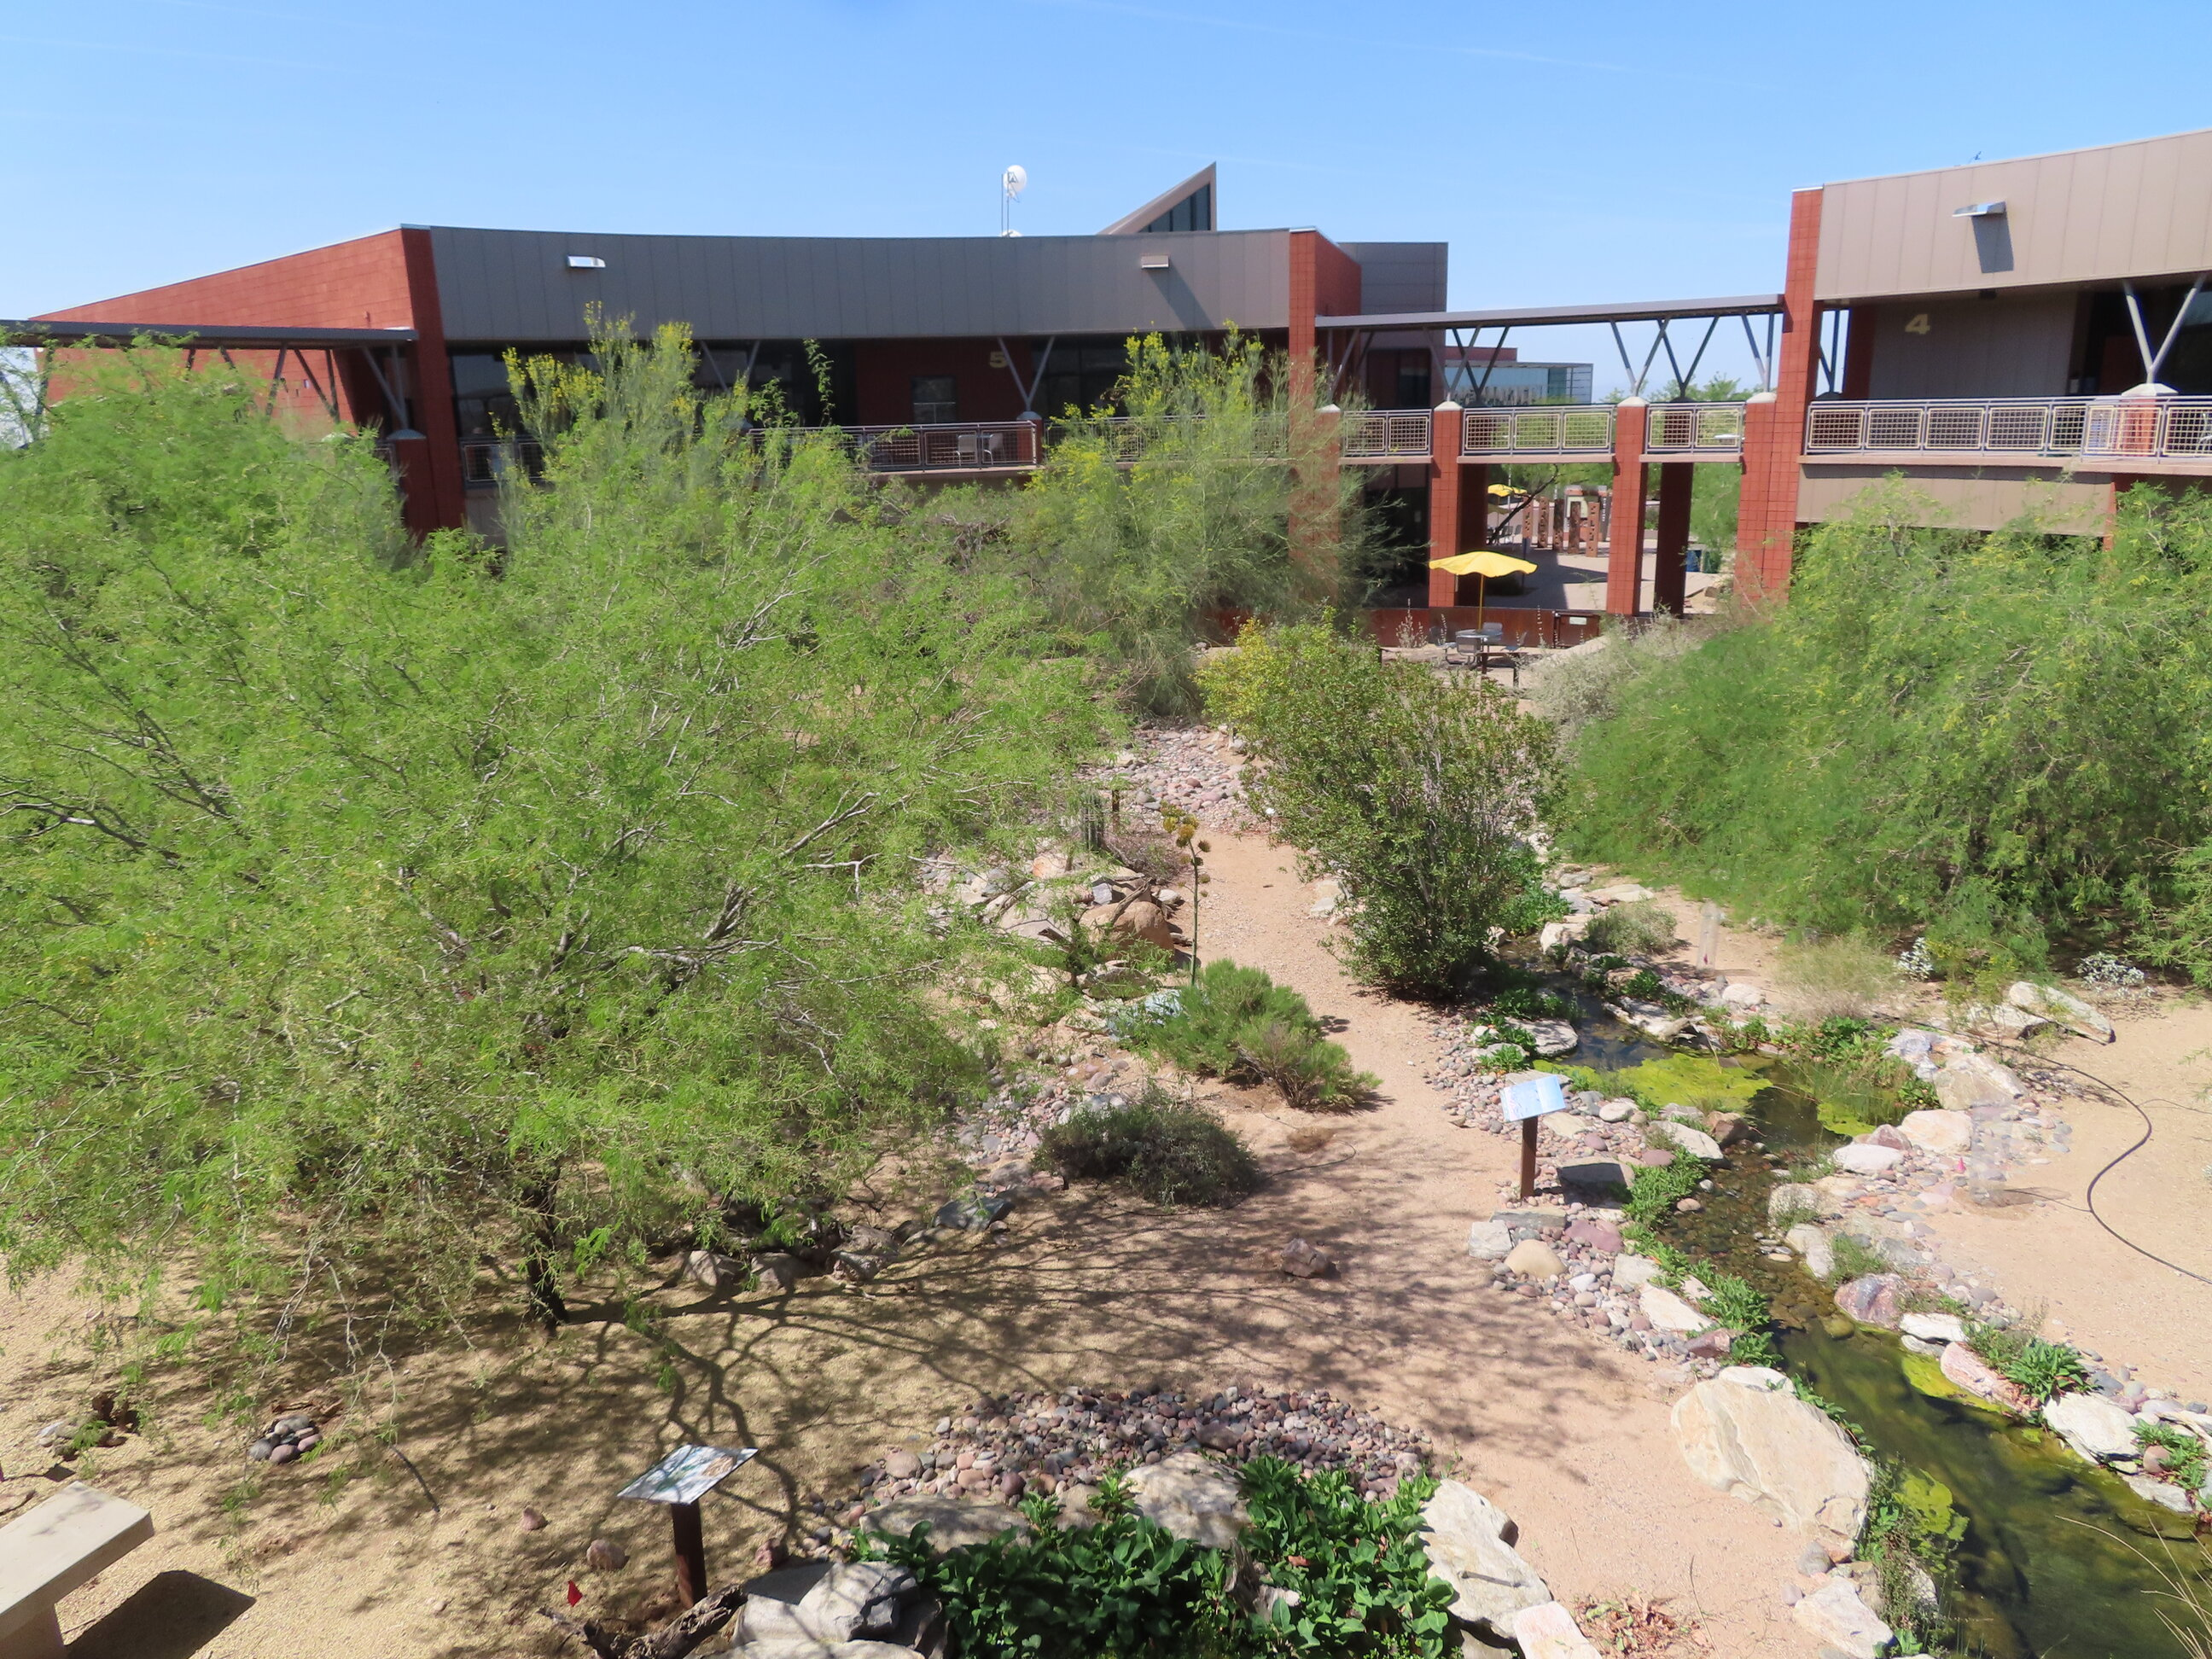 Garden at the Red Mountain campus of MCC